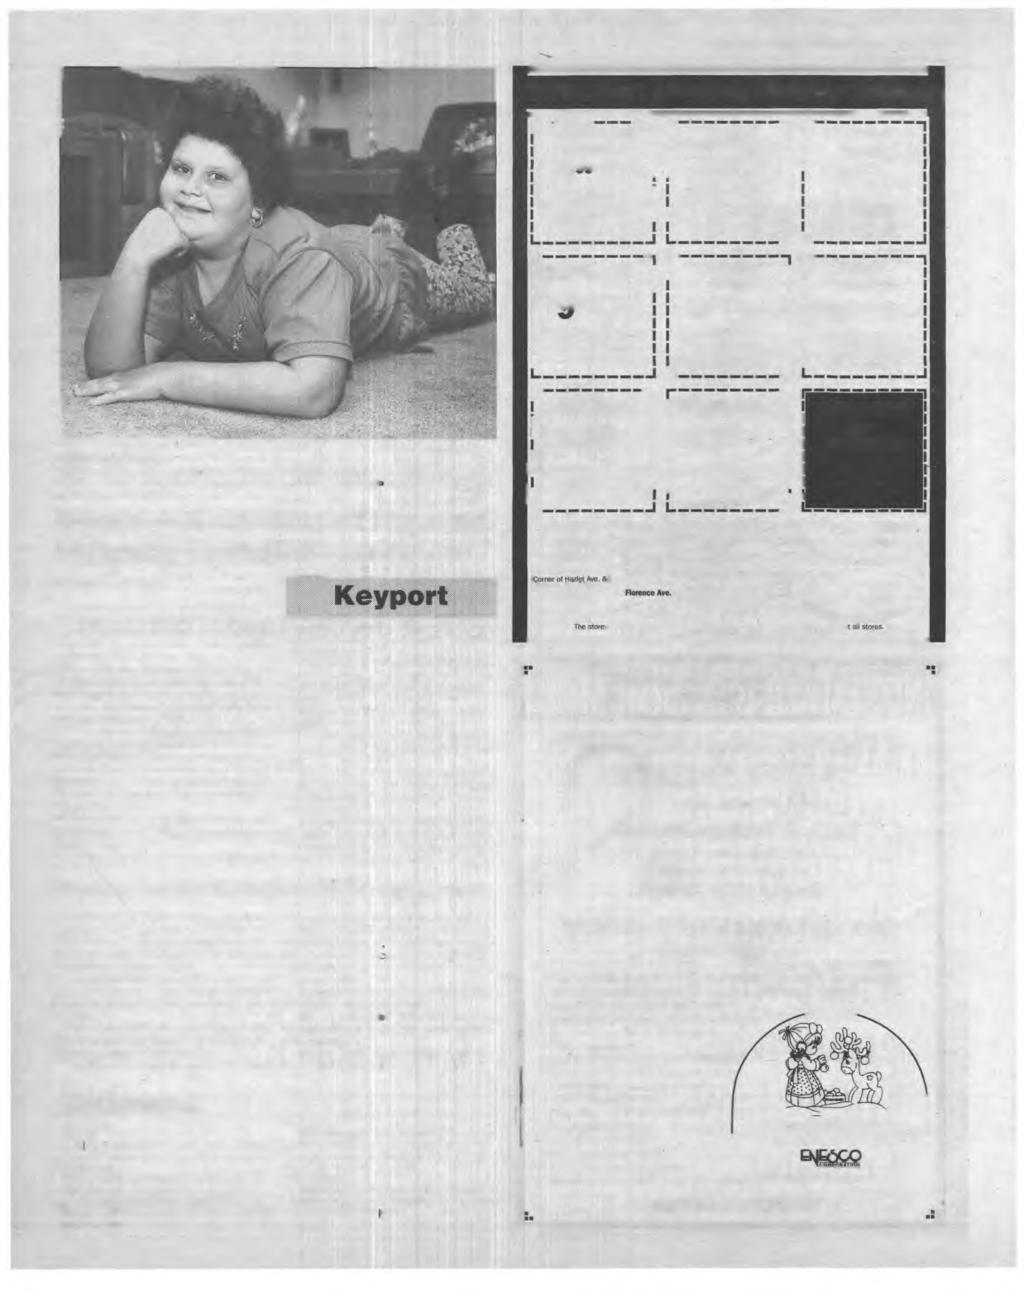 Bayshore Keyport Child Saves Aunt S Life Area Indians Celebrate 2001 Ford Escort Lx4 Fuse Box Diagram The Ndependent November 111992 1 N O Ws Ta